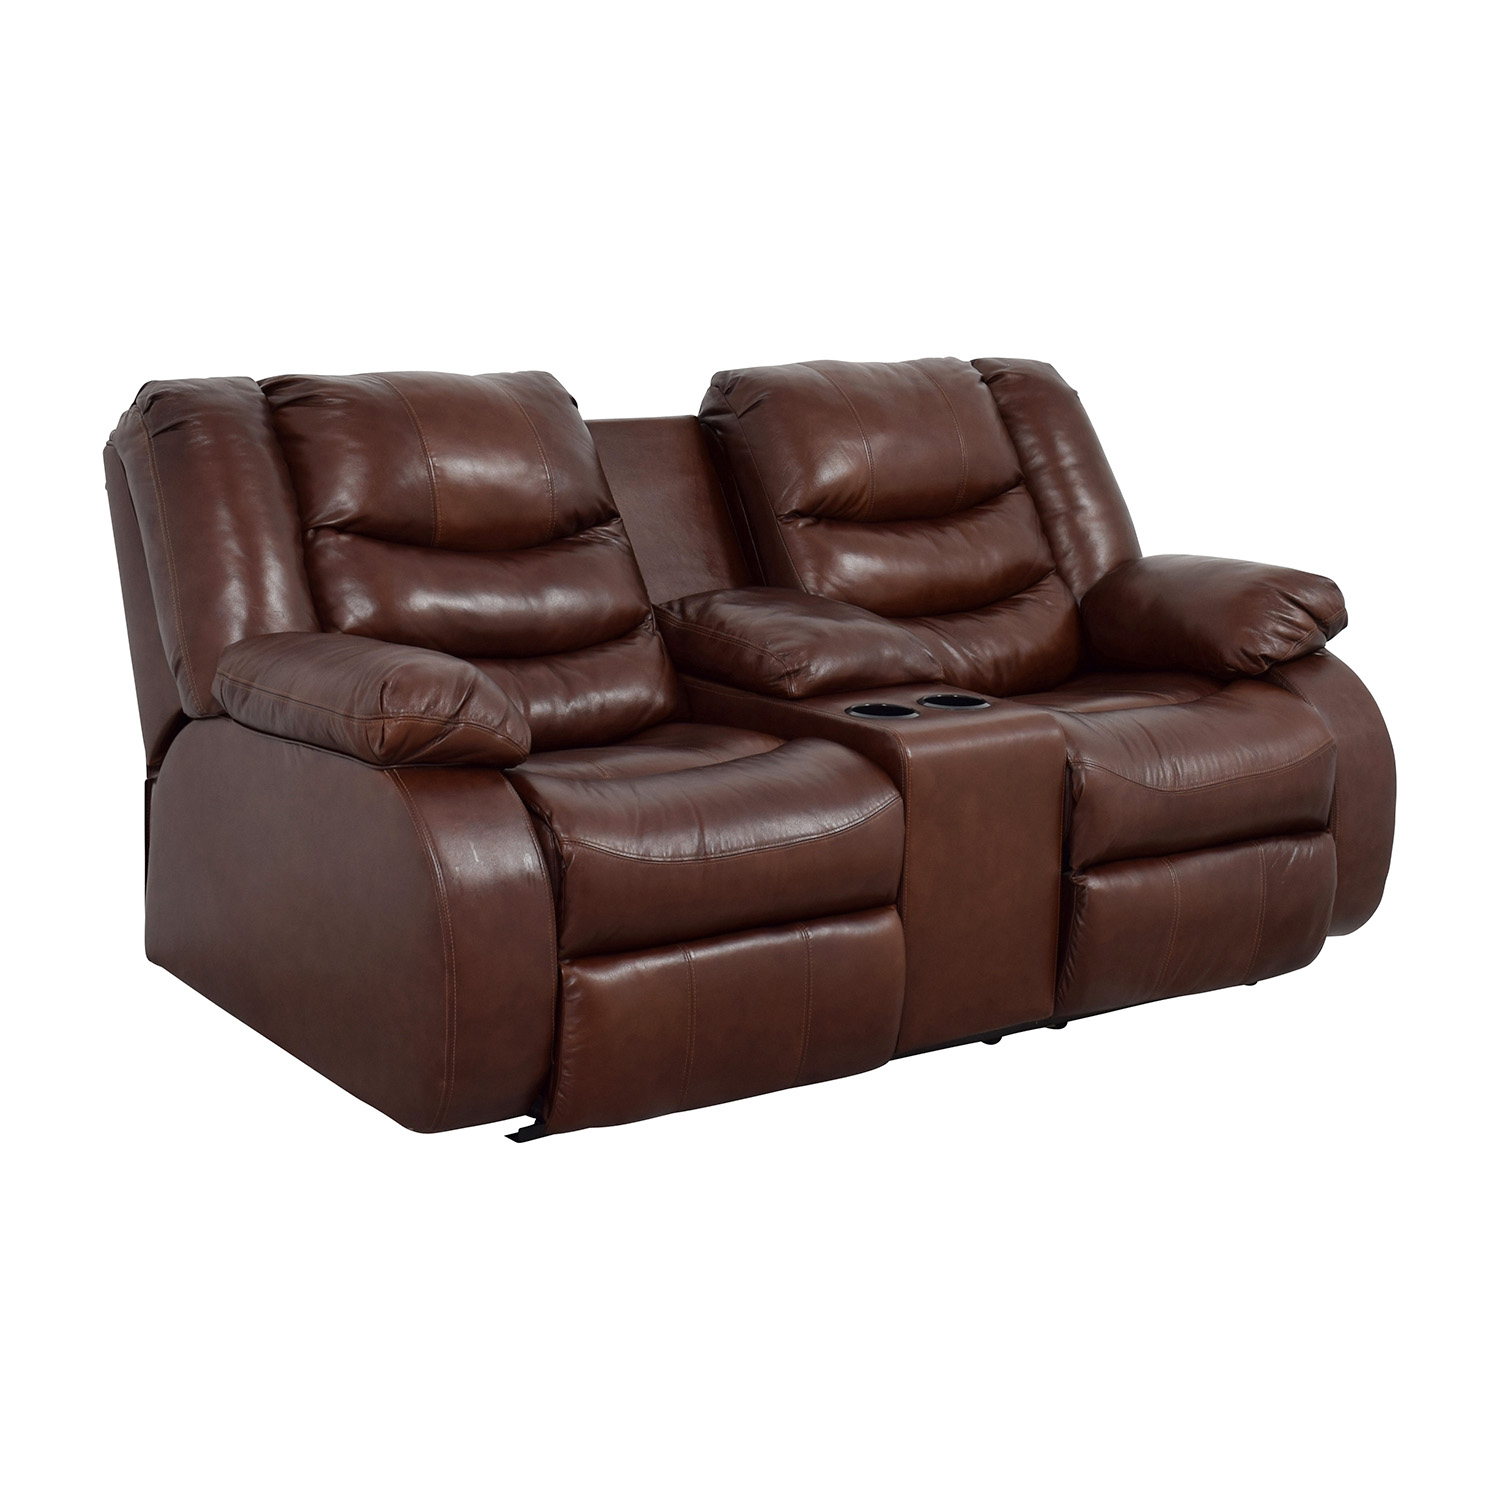 Couch Chair 90 Off Ashley Furniture Ashley Furniture Brown Leather